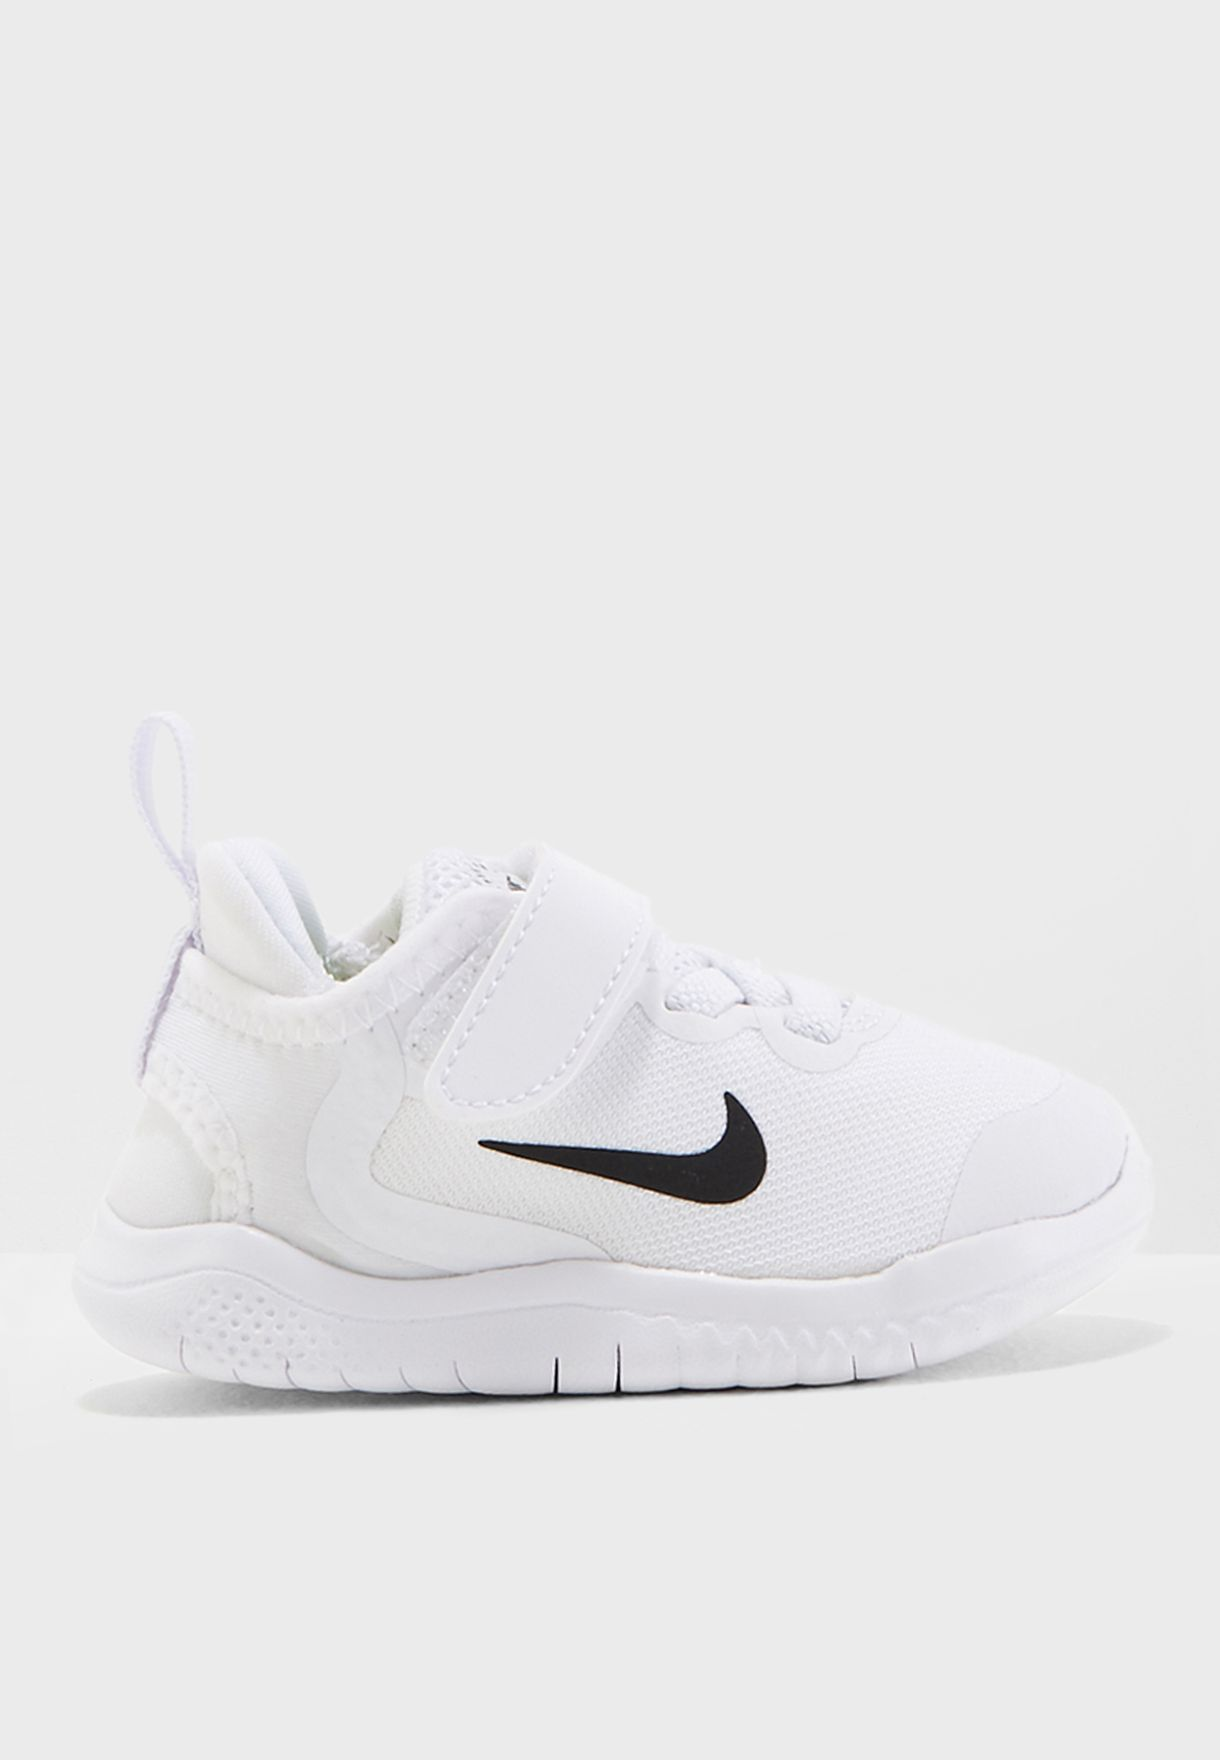 b1da68147517 Shop Nike white Infant Free Rn 2018 AH3453-100 for Kids in UAE ...